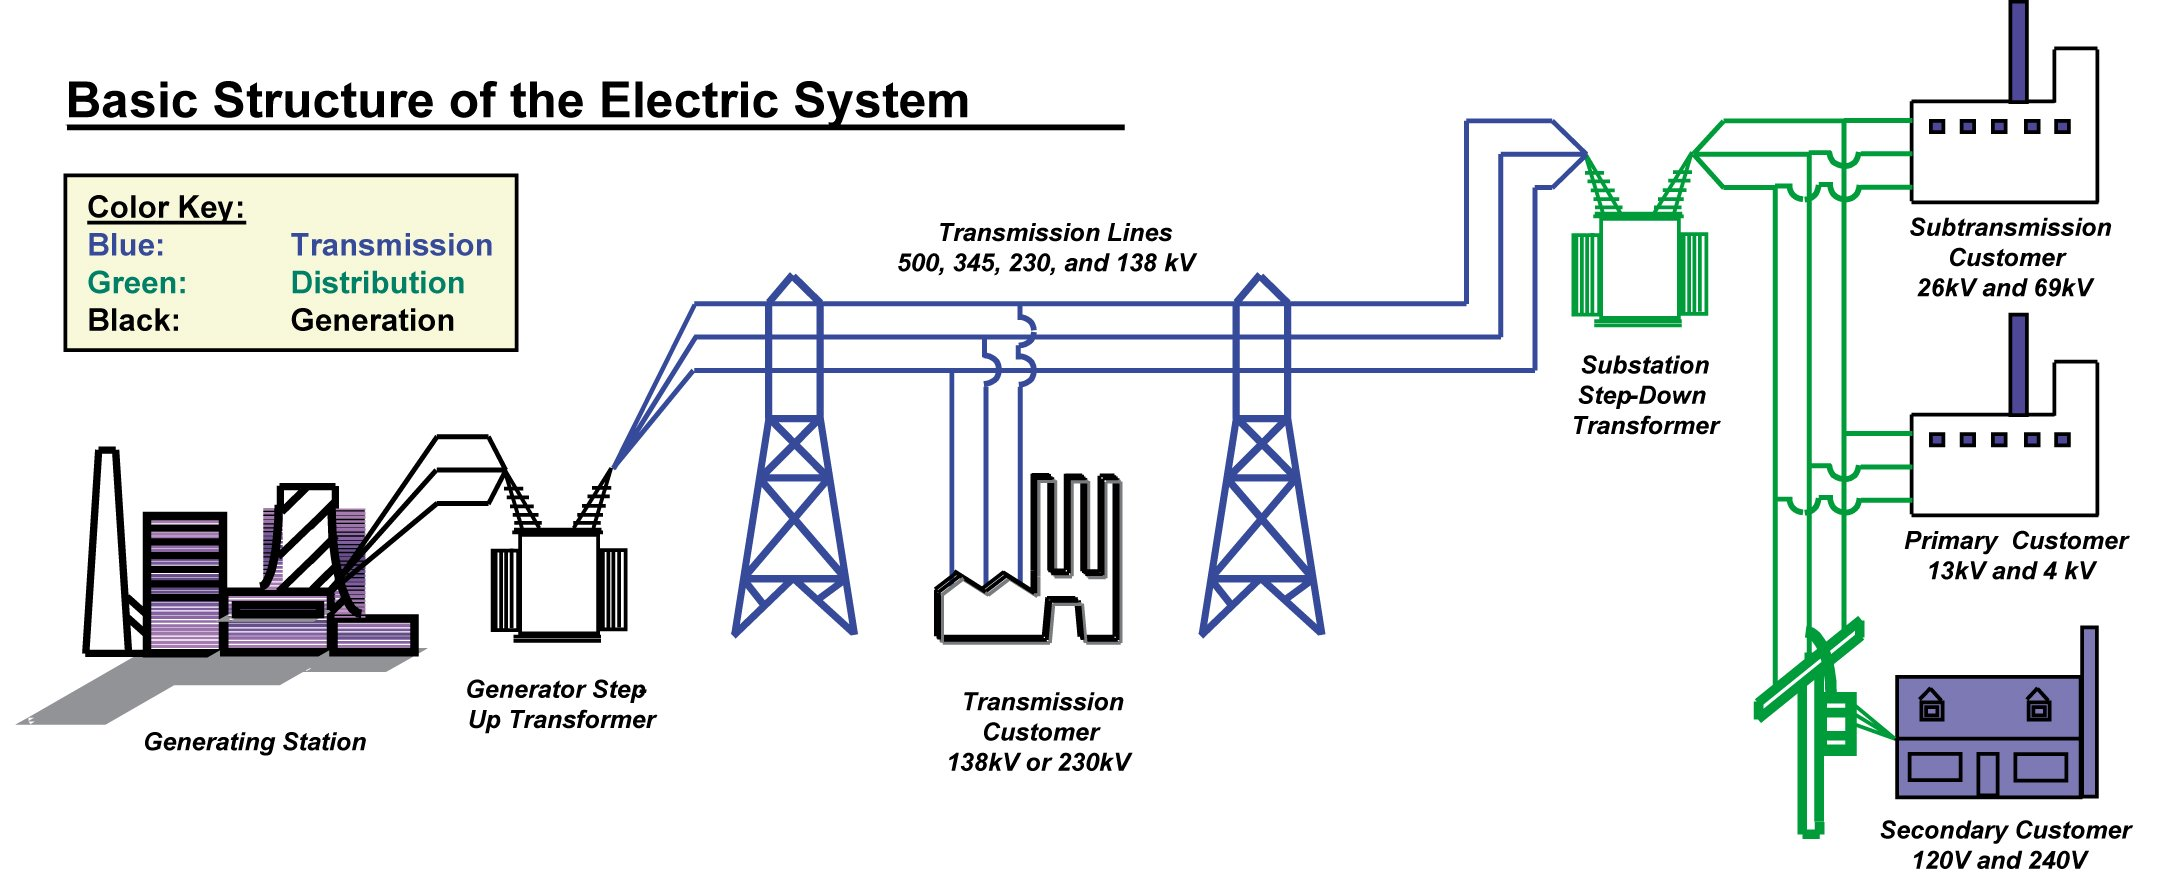 house electrical wiring diagram in india 4 wire z wave thermostat ultra-high voltage transmission (uhv) - a new way to move power emerson automation experts ...